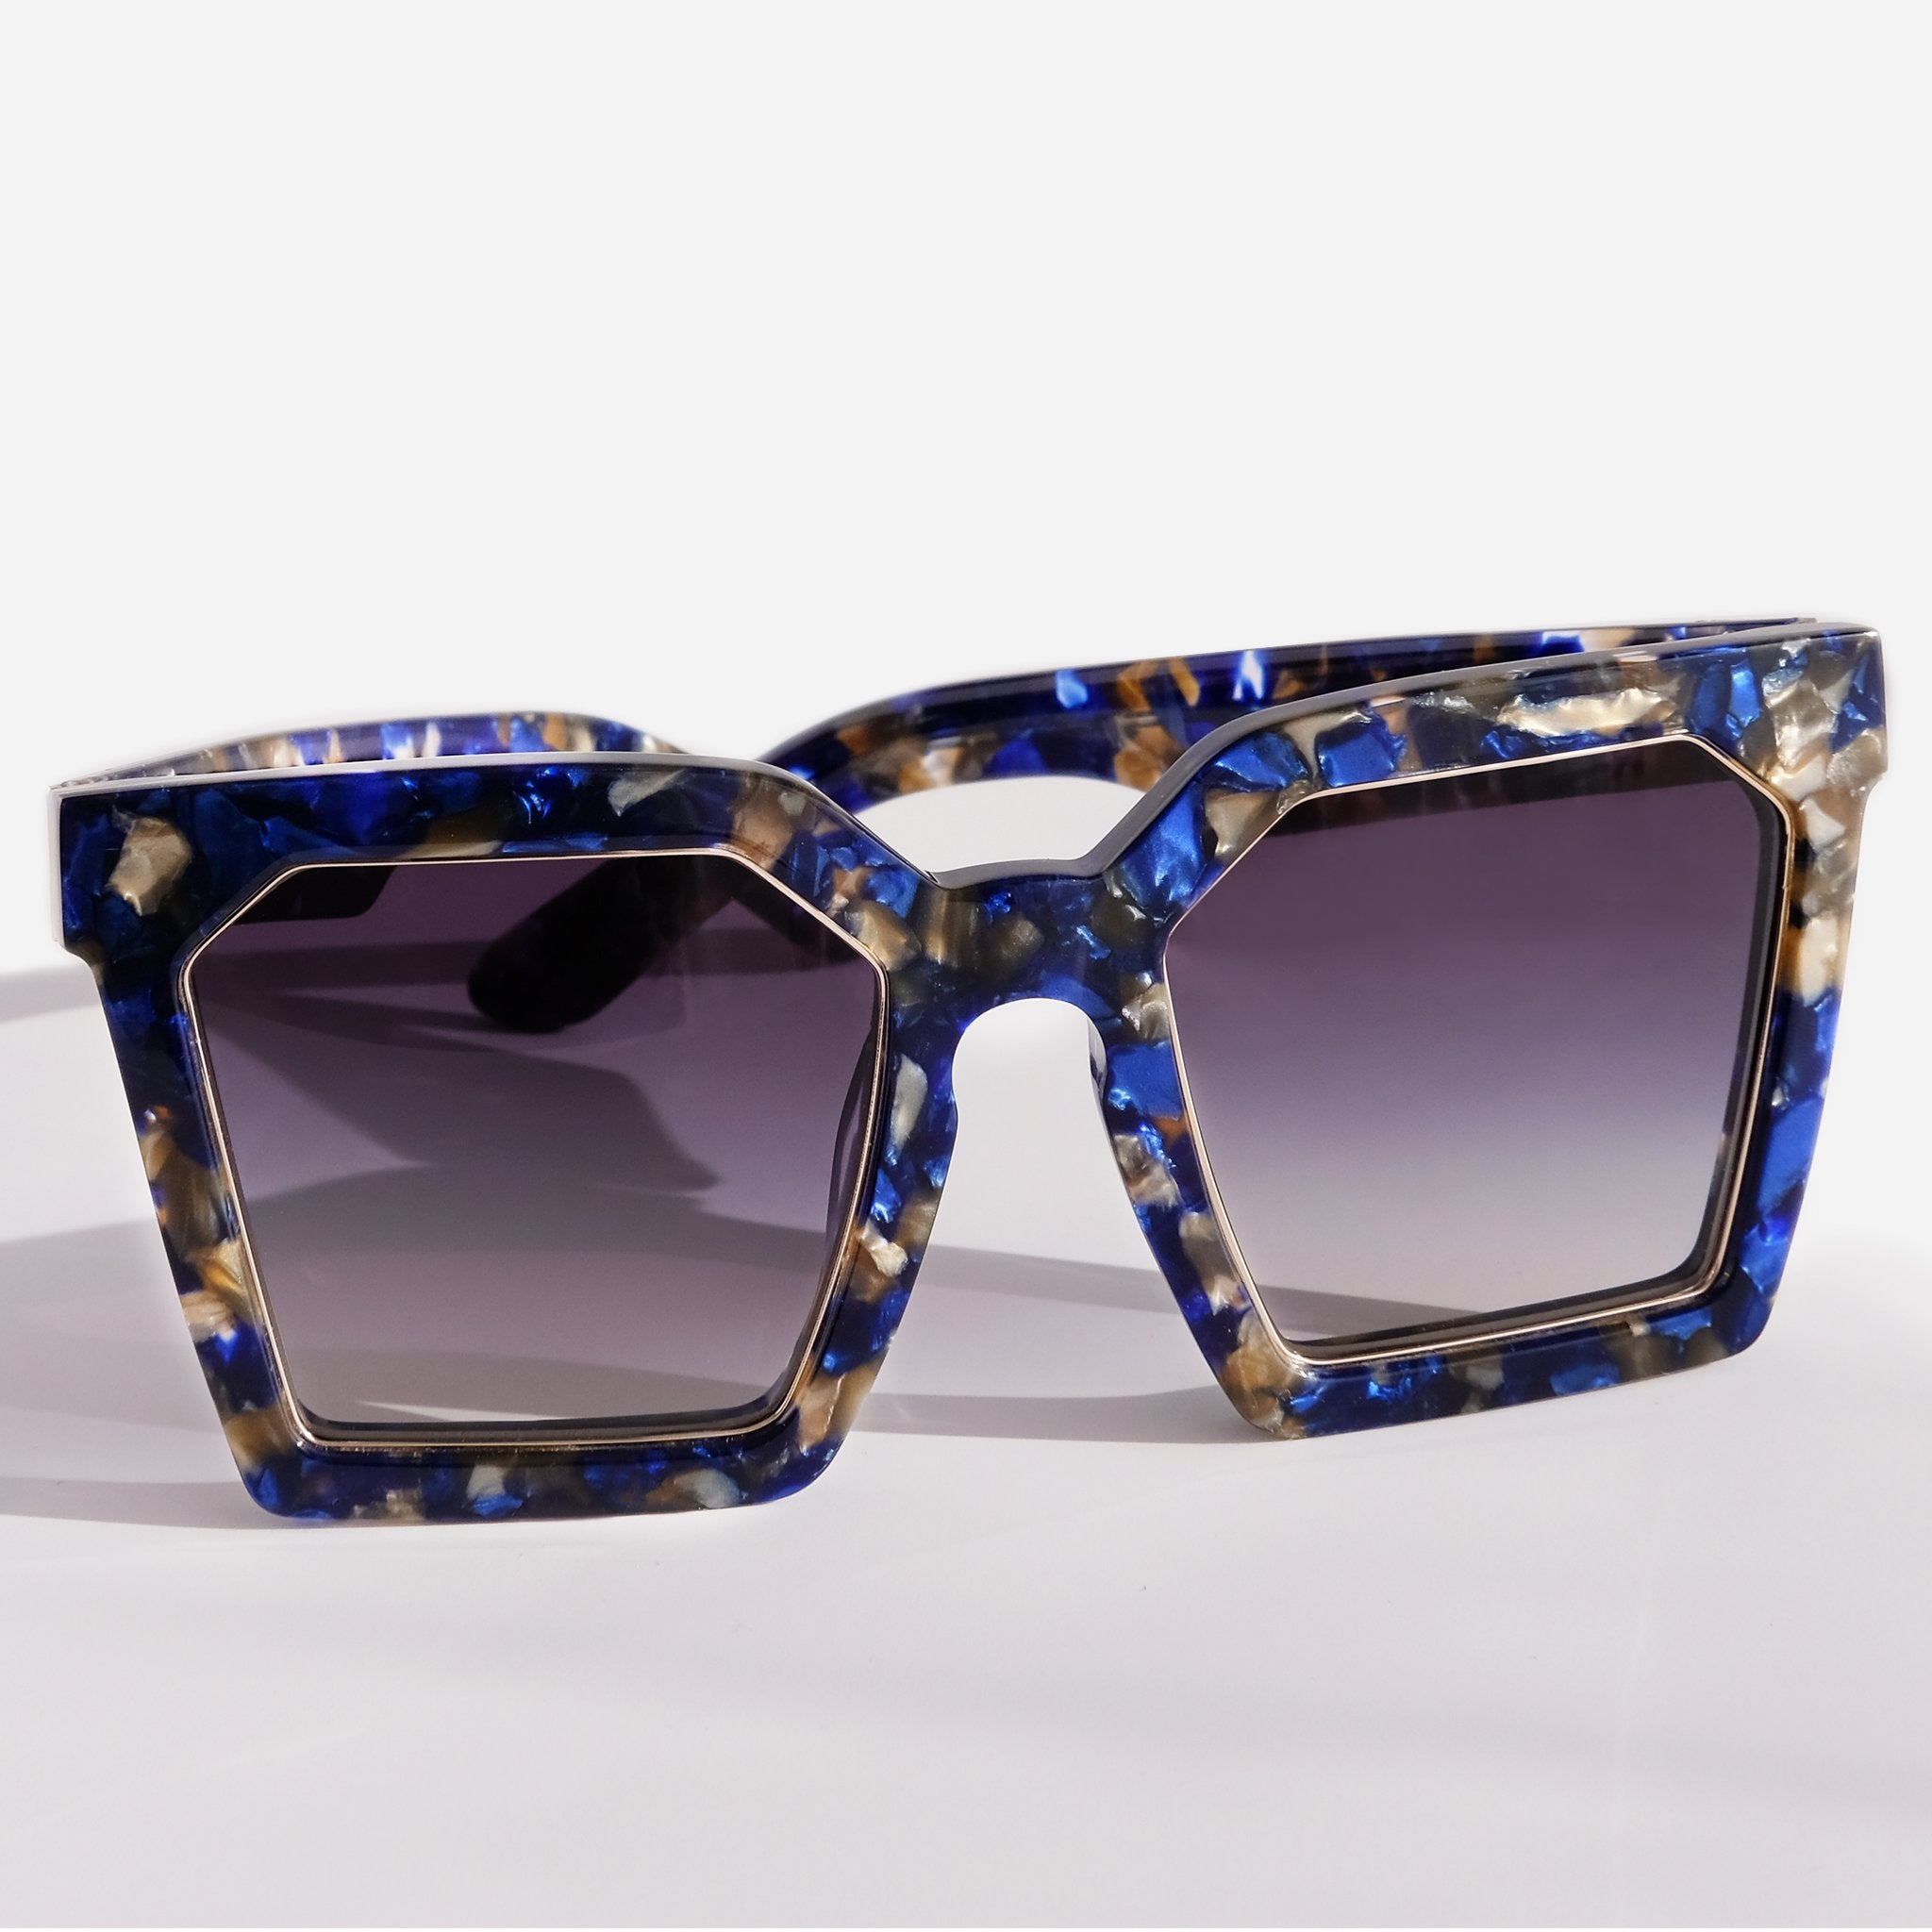 Designer Eyewear for men & women. limited edition.